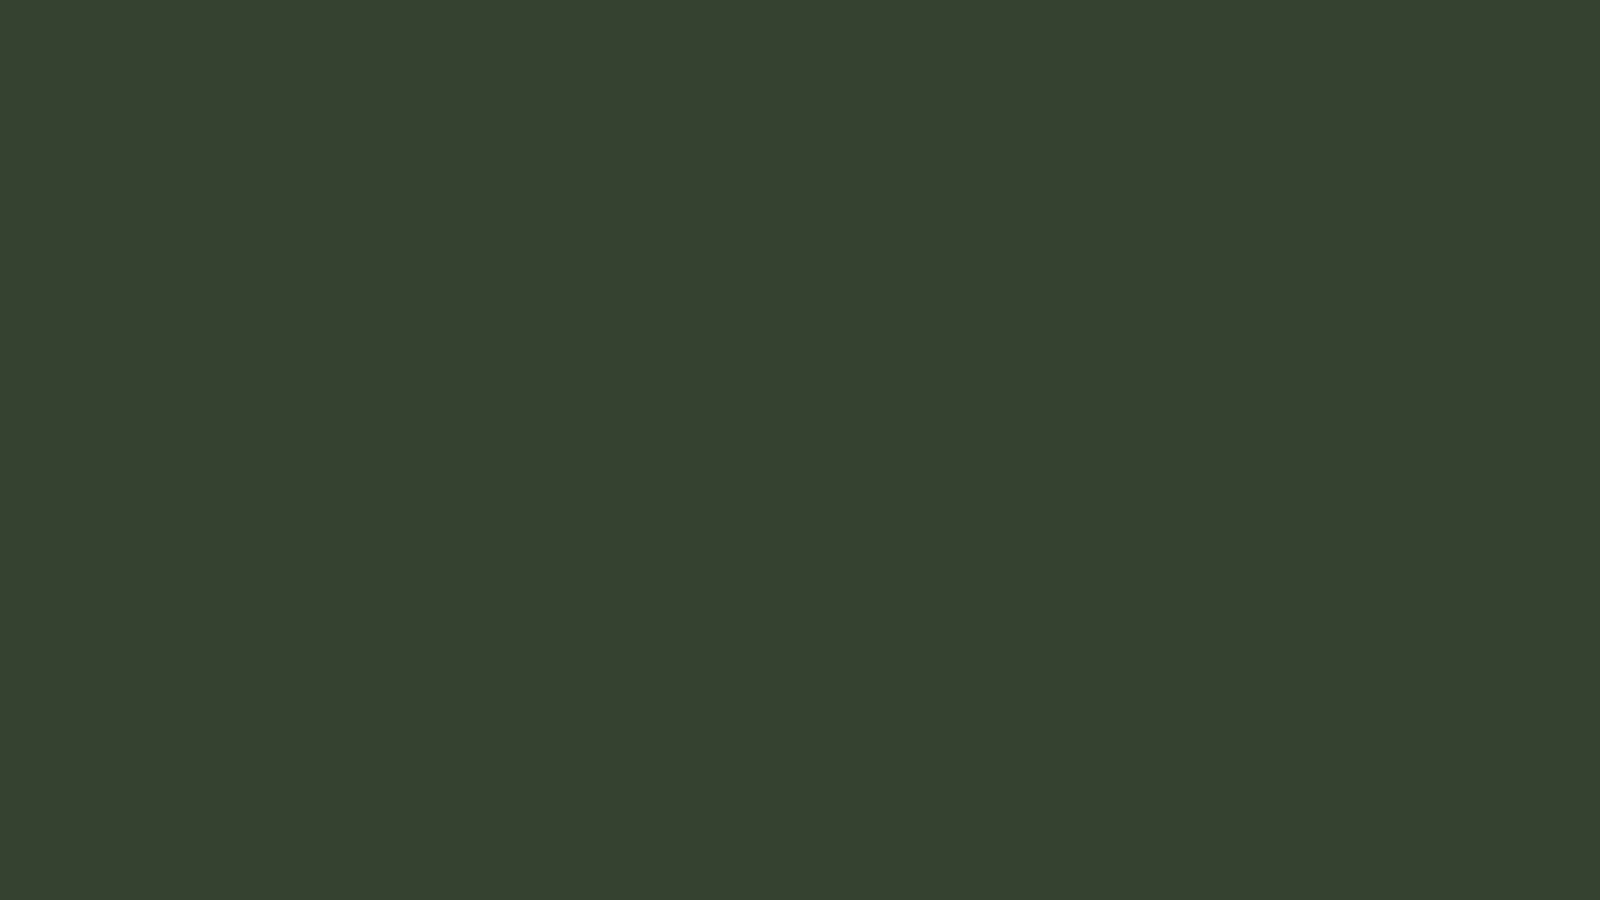 1600x900 Kombu Green Solid Color Background